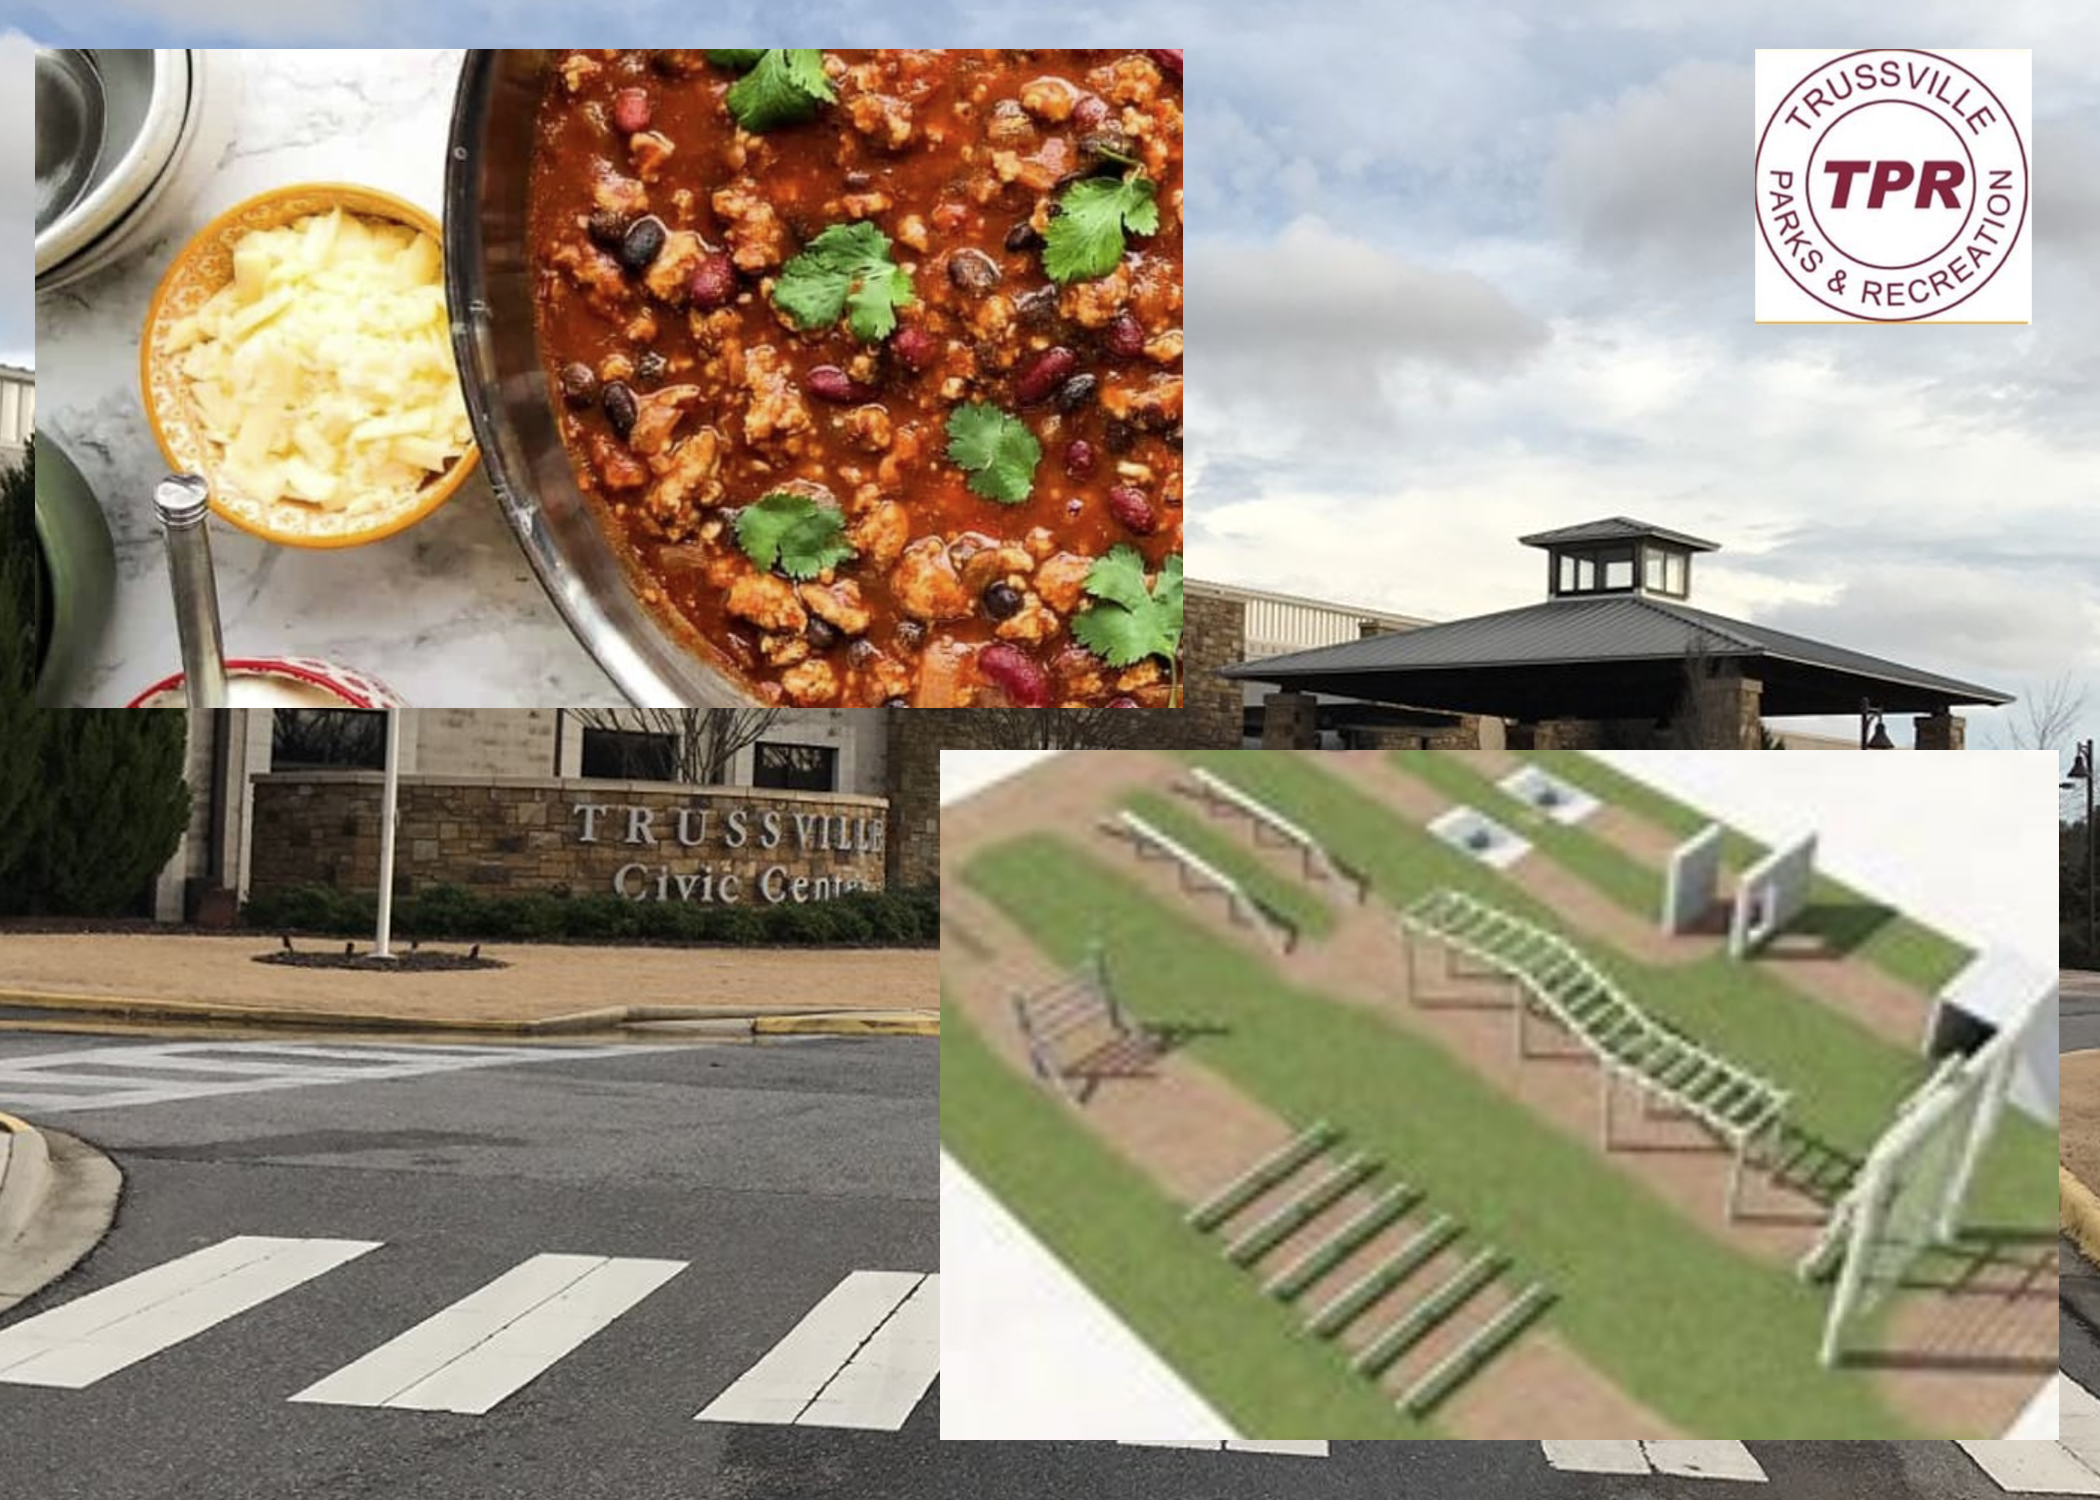 Trussville hosting chili cook-off and obstacle course race